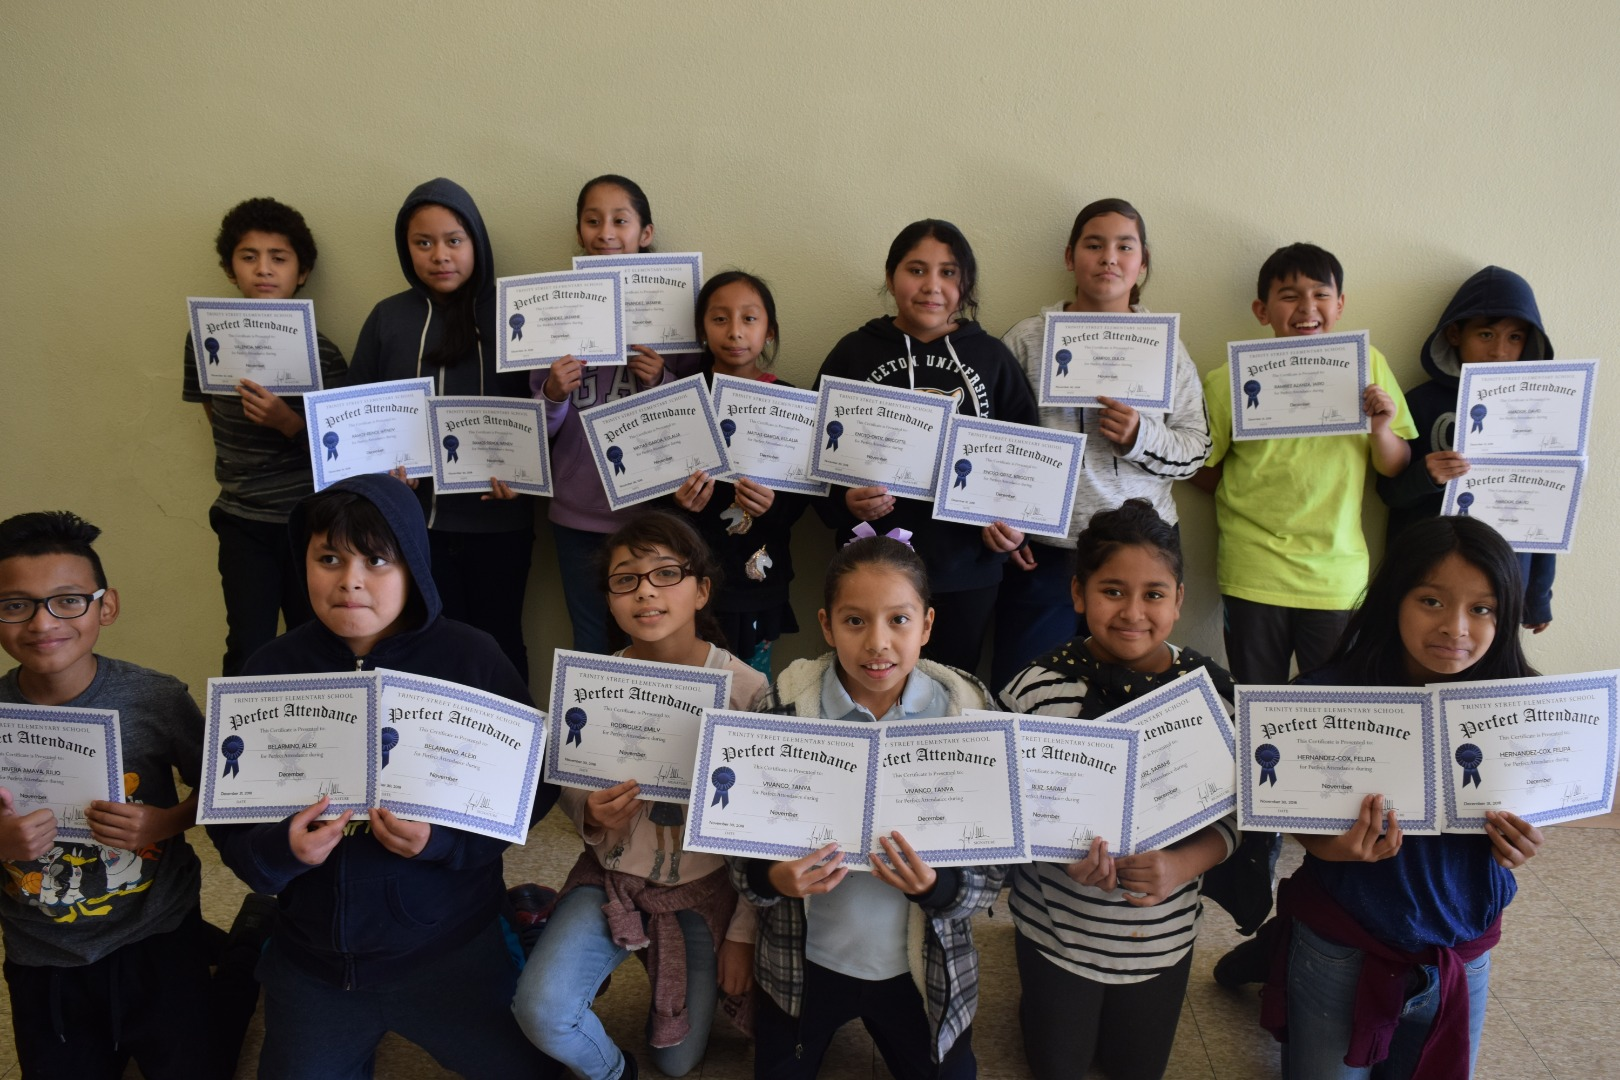 Falcon Students of the Month